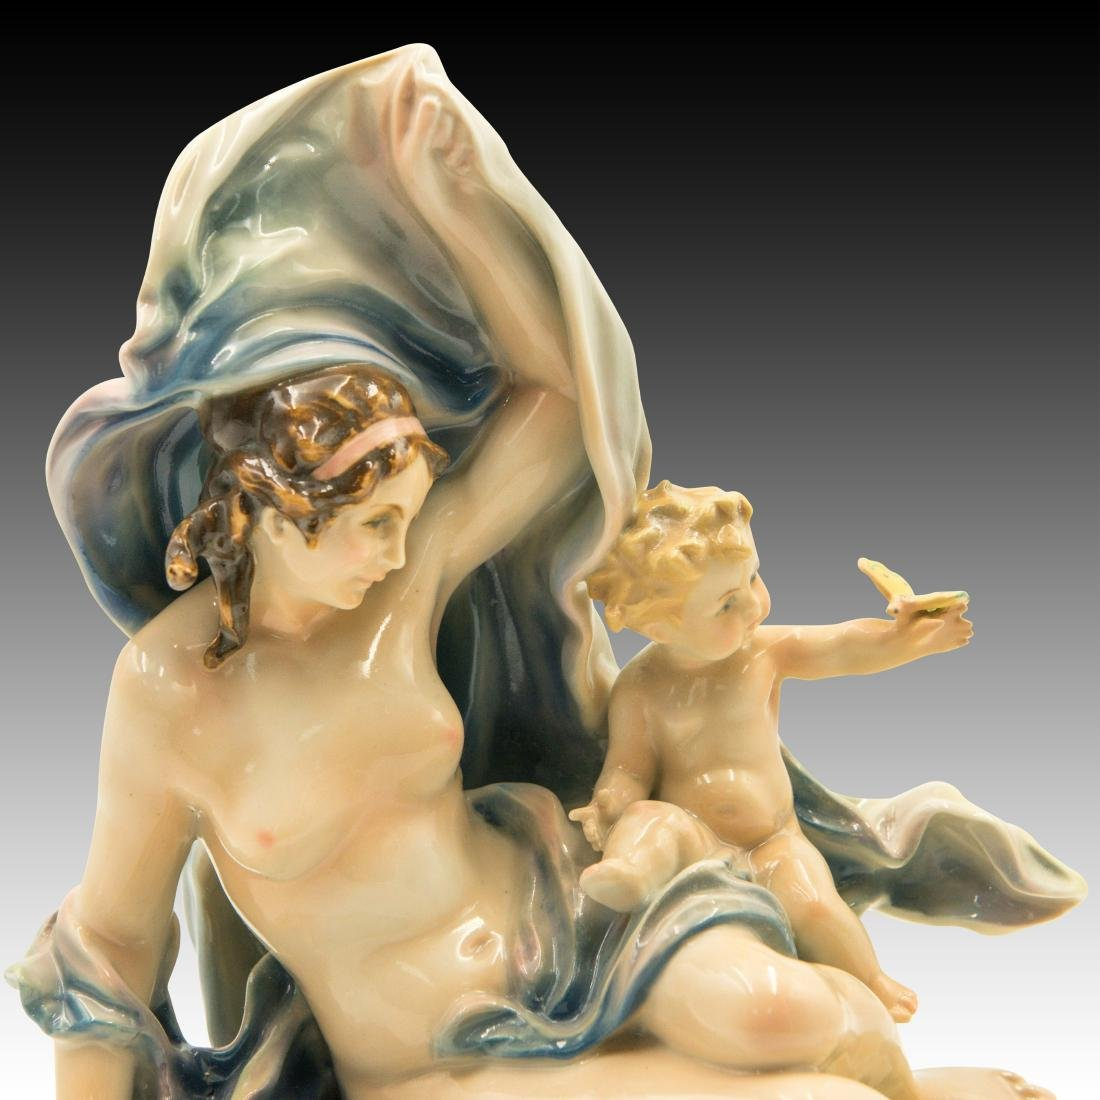 Karl ENS Porcelain Nude Woman with Child Figurine - 5